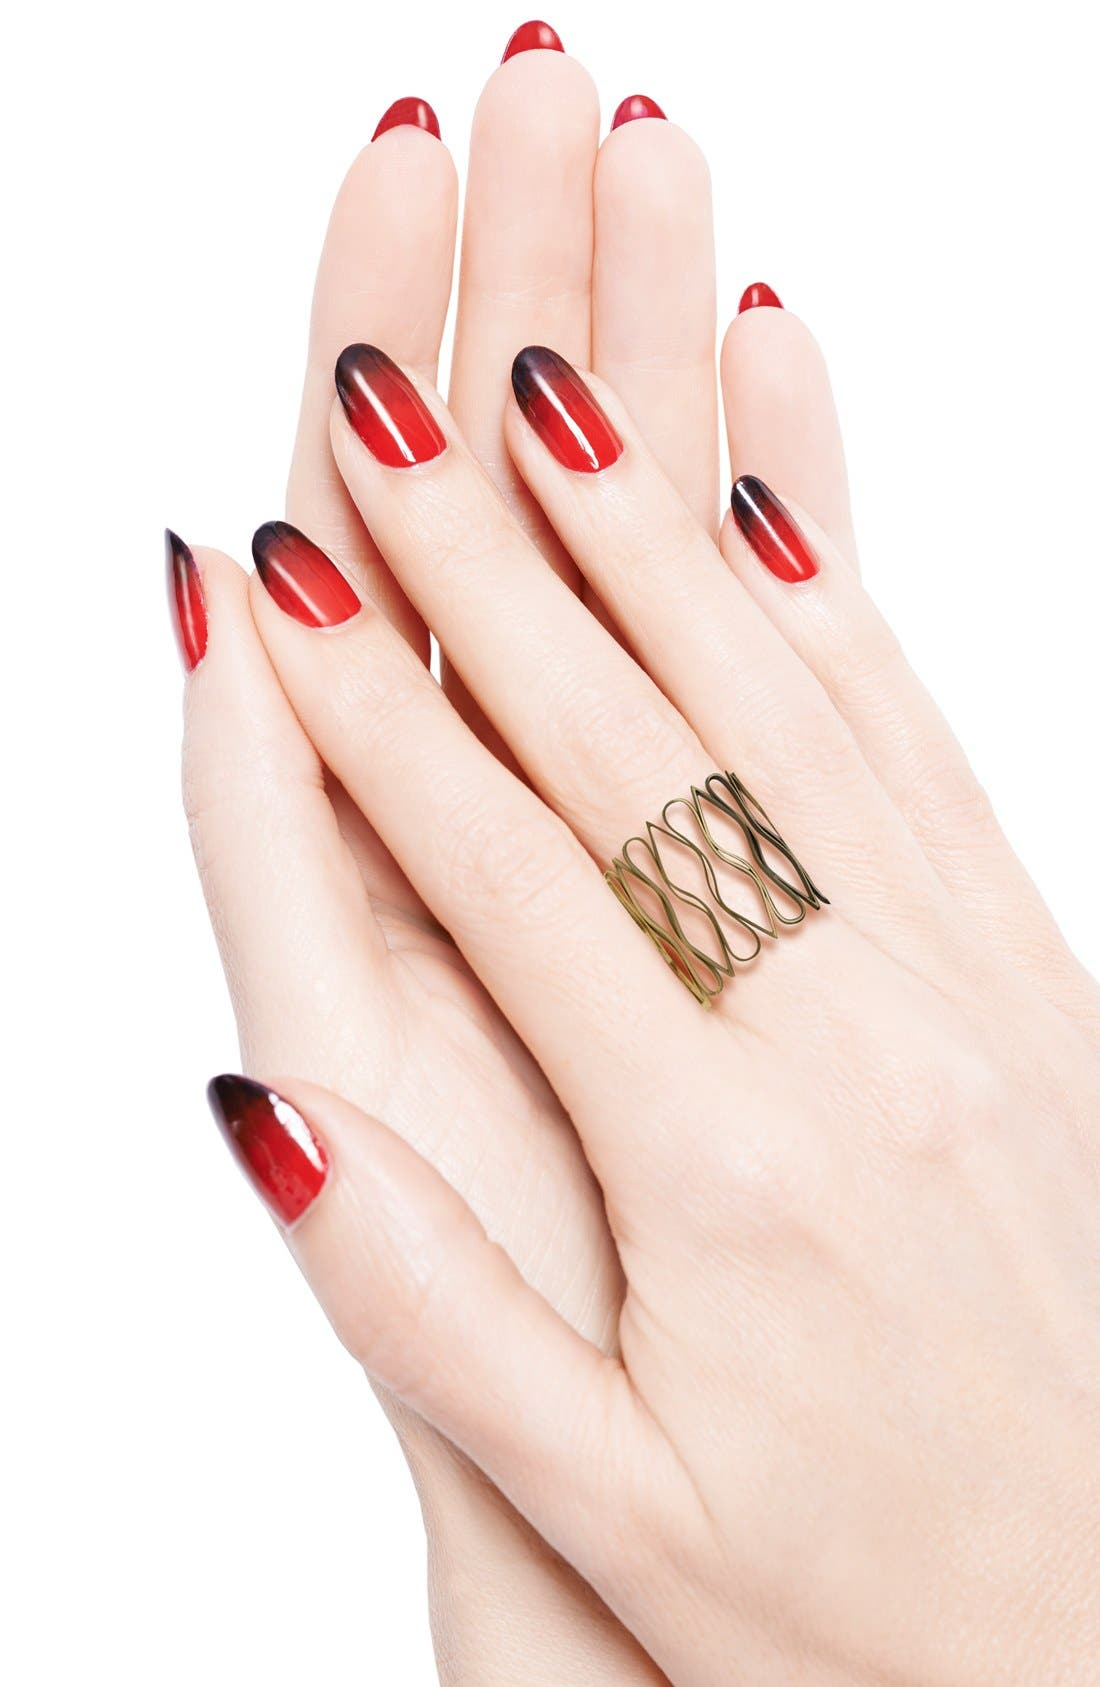 Christian Louboutin Fade To Rouge Manicure